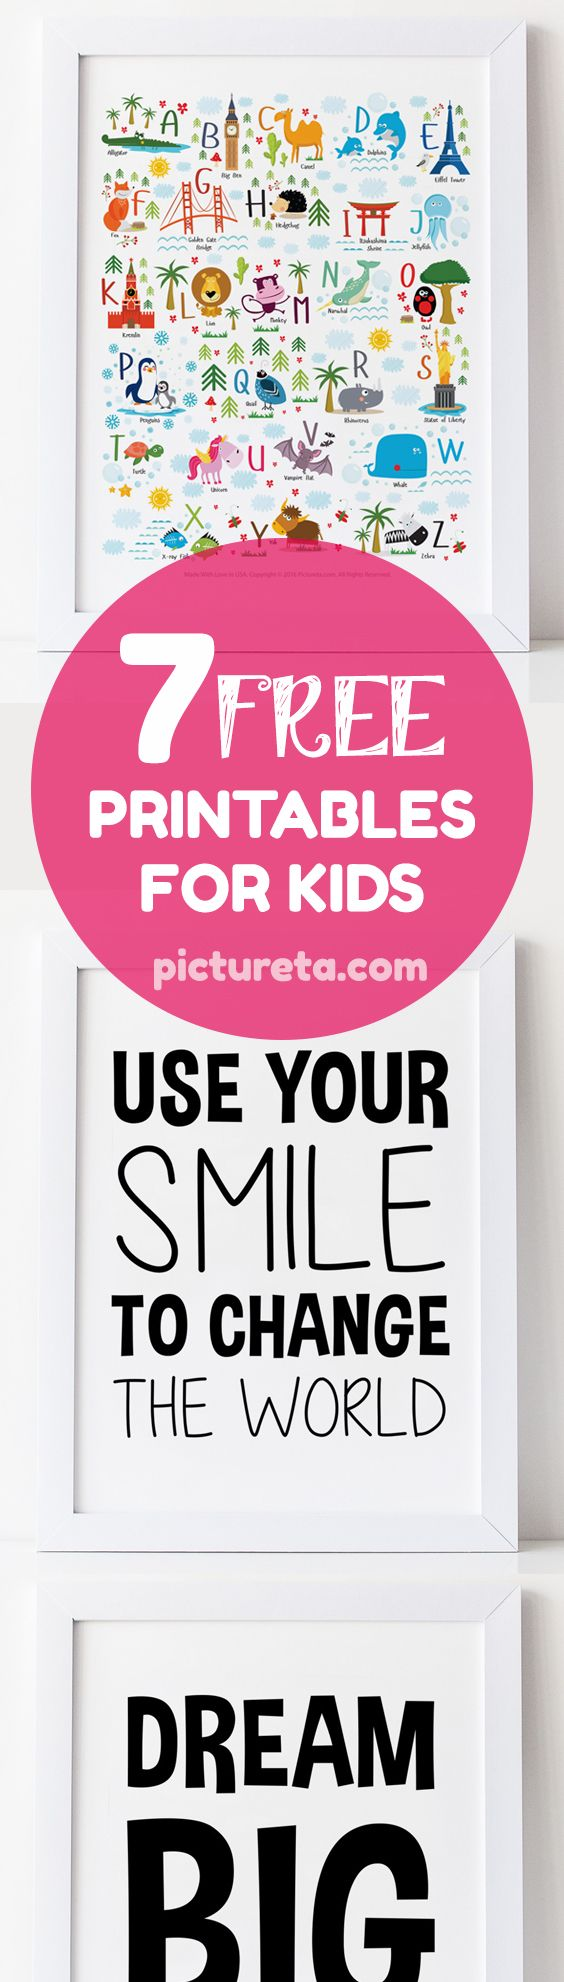 Inspirational Quotes For Kids Free Printables For Kidsfree Nursery Printablesinspirational